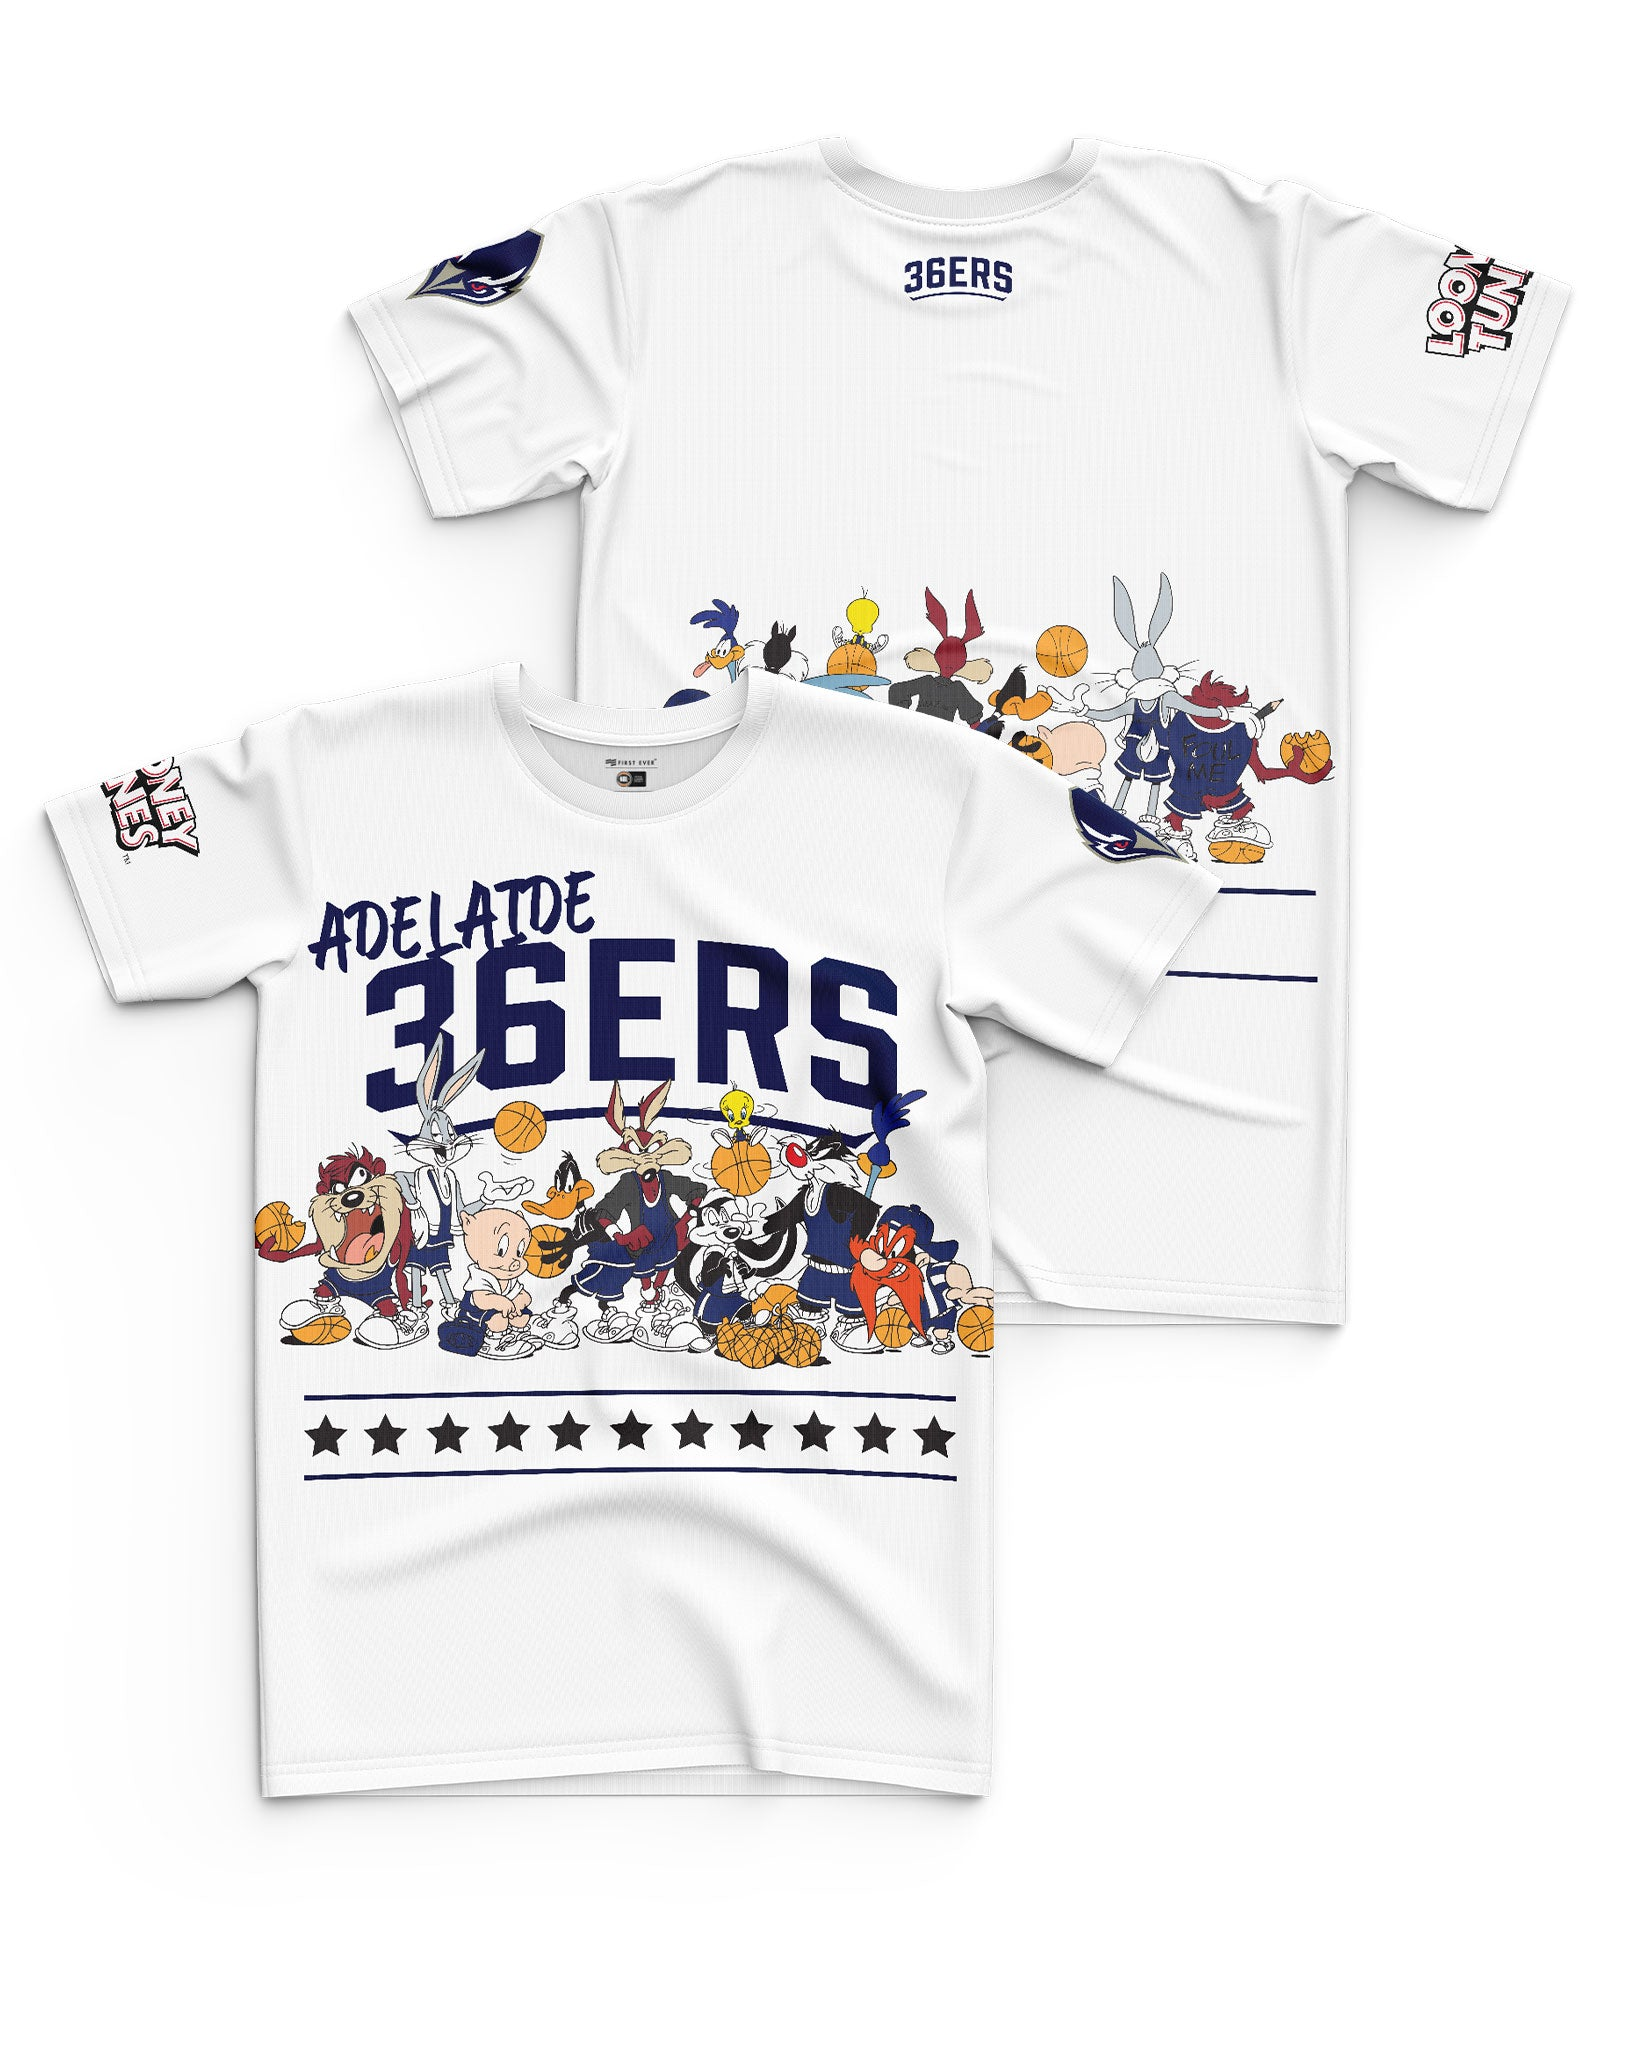 Adelaide 36ers 20/21 Looney Tunes Youth Squad Tee - Personalised